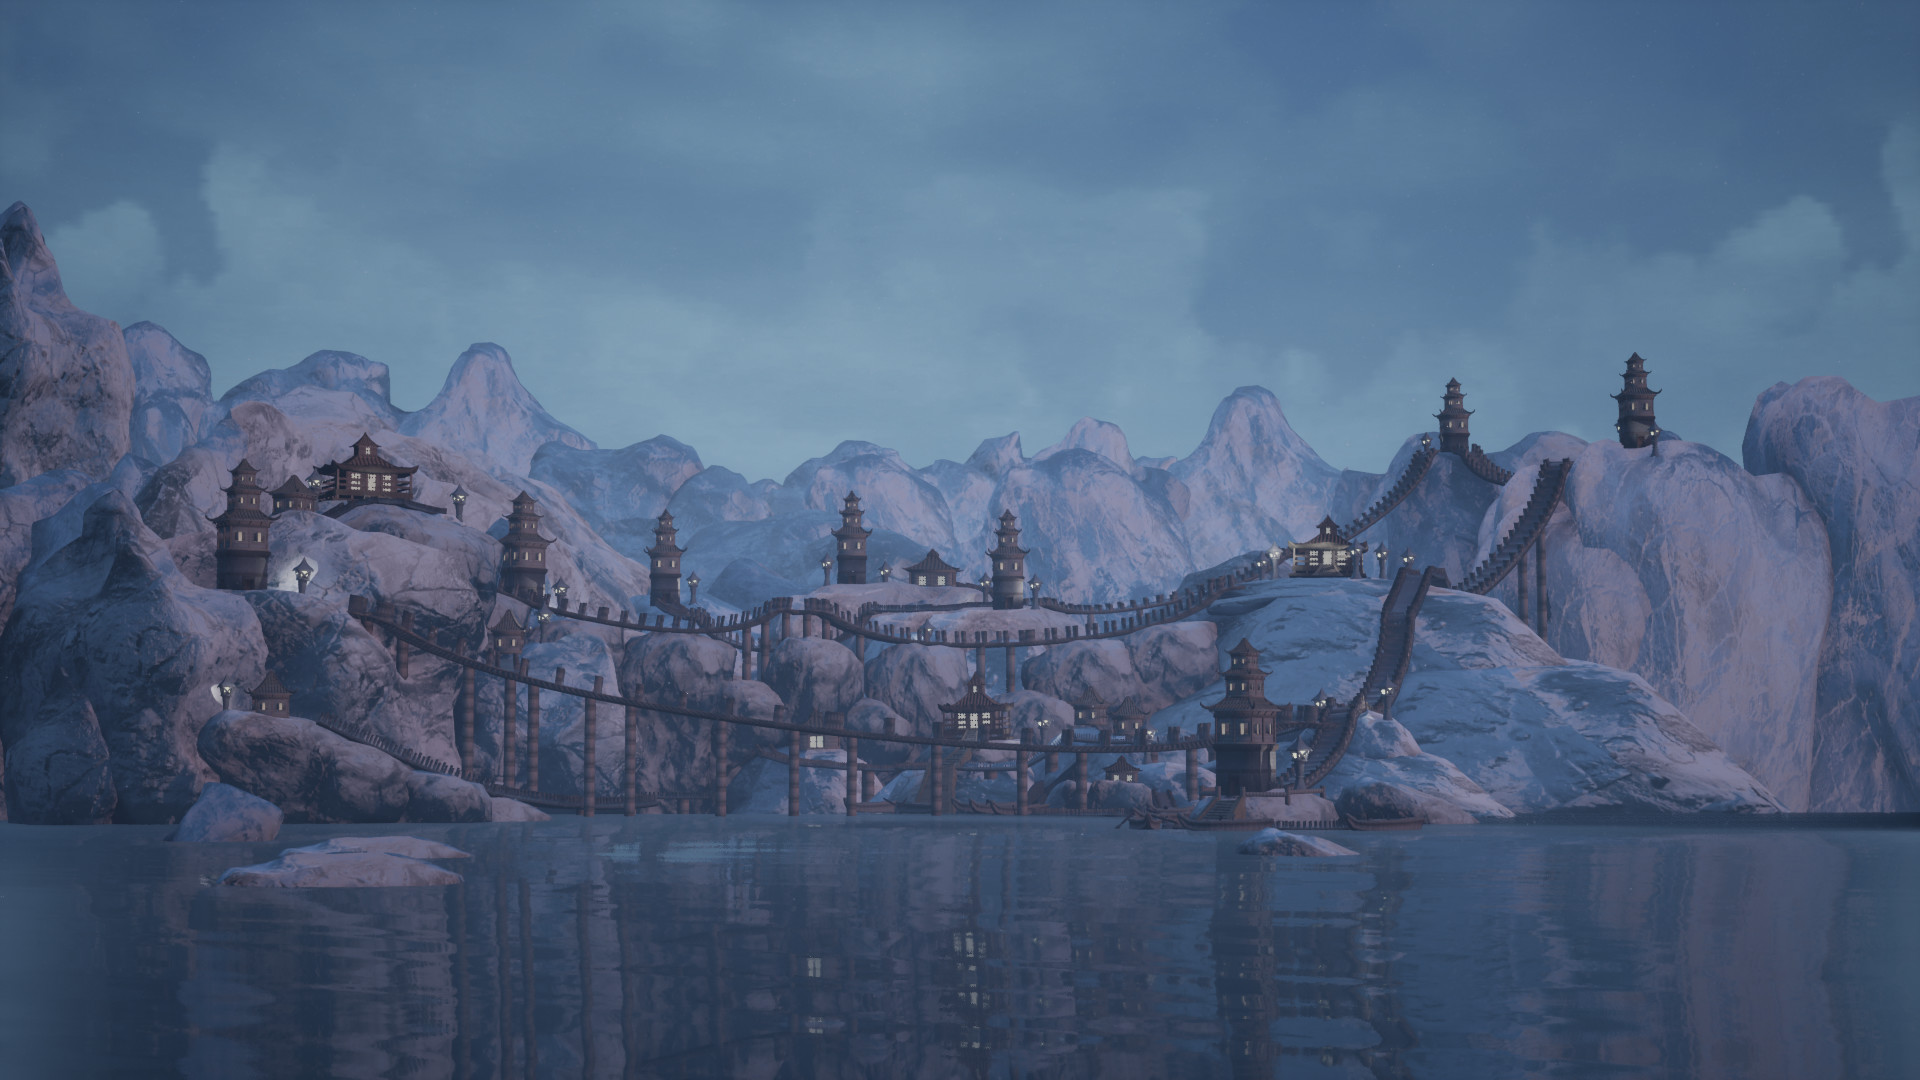 Asen Kambitov - Small/Low poly UE 4 Environment